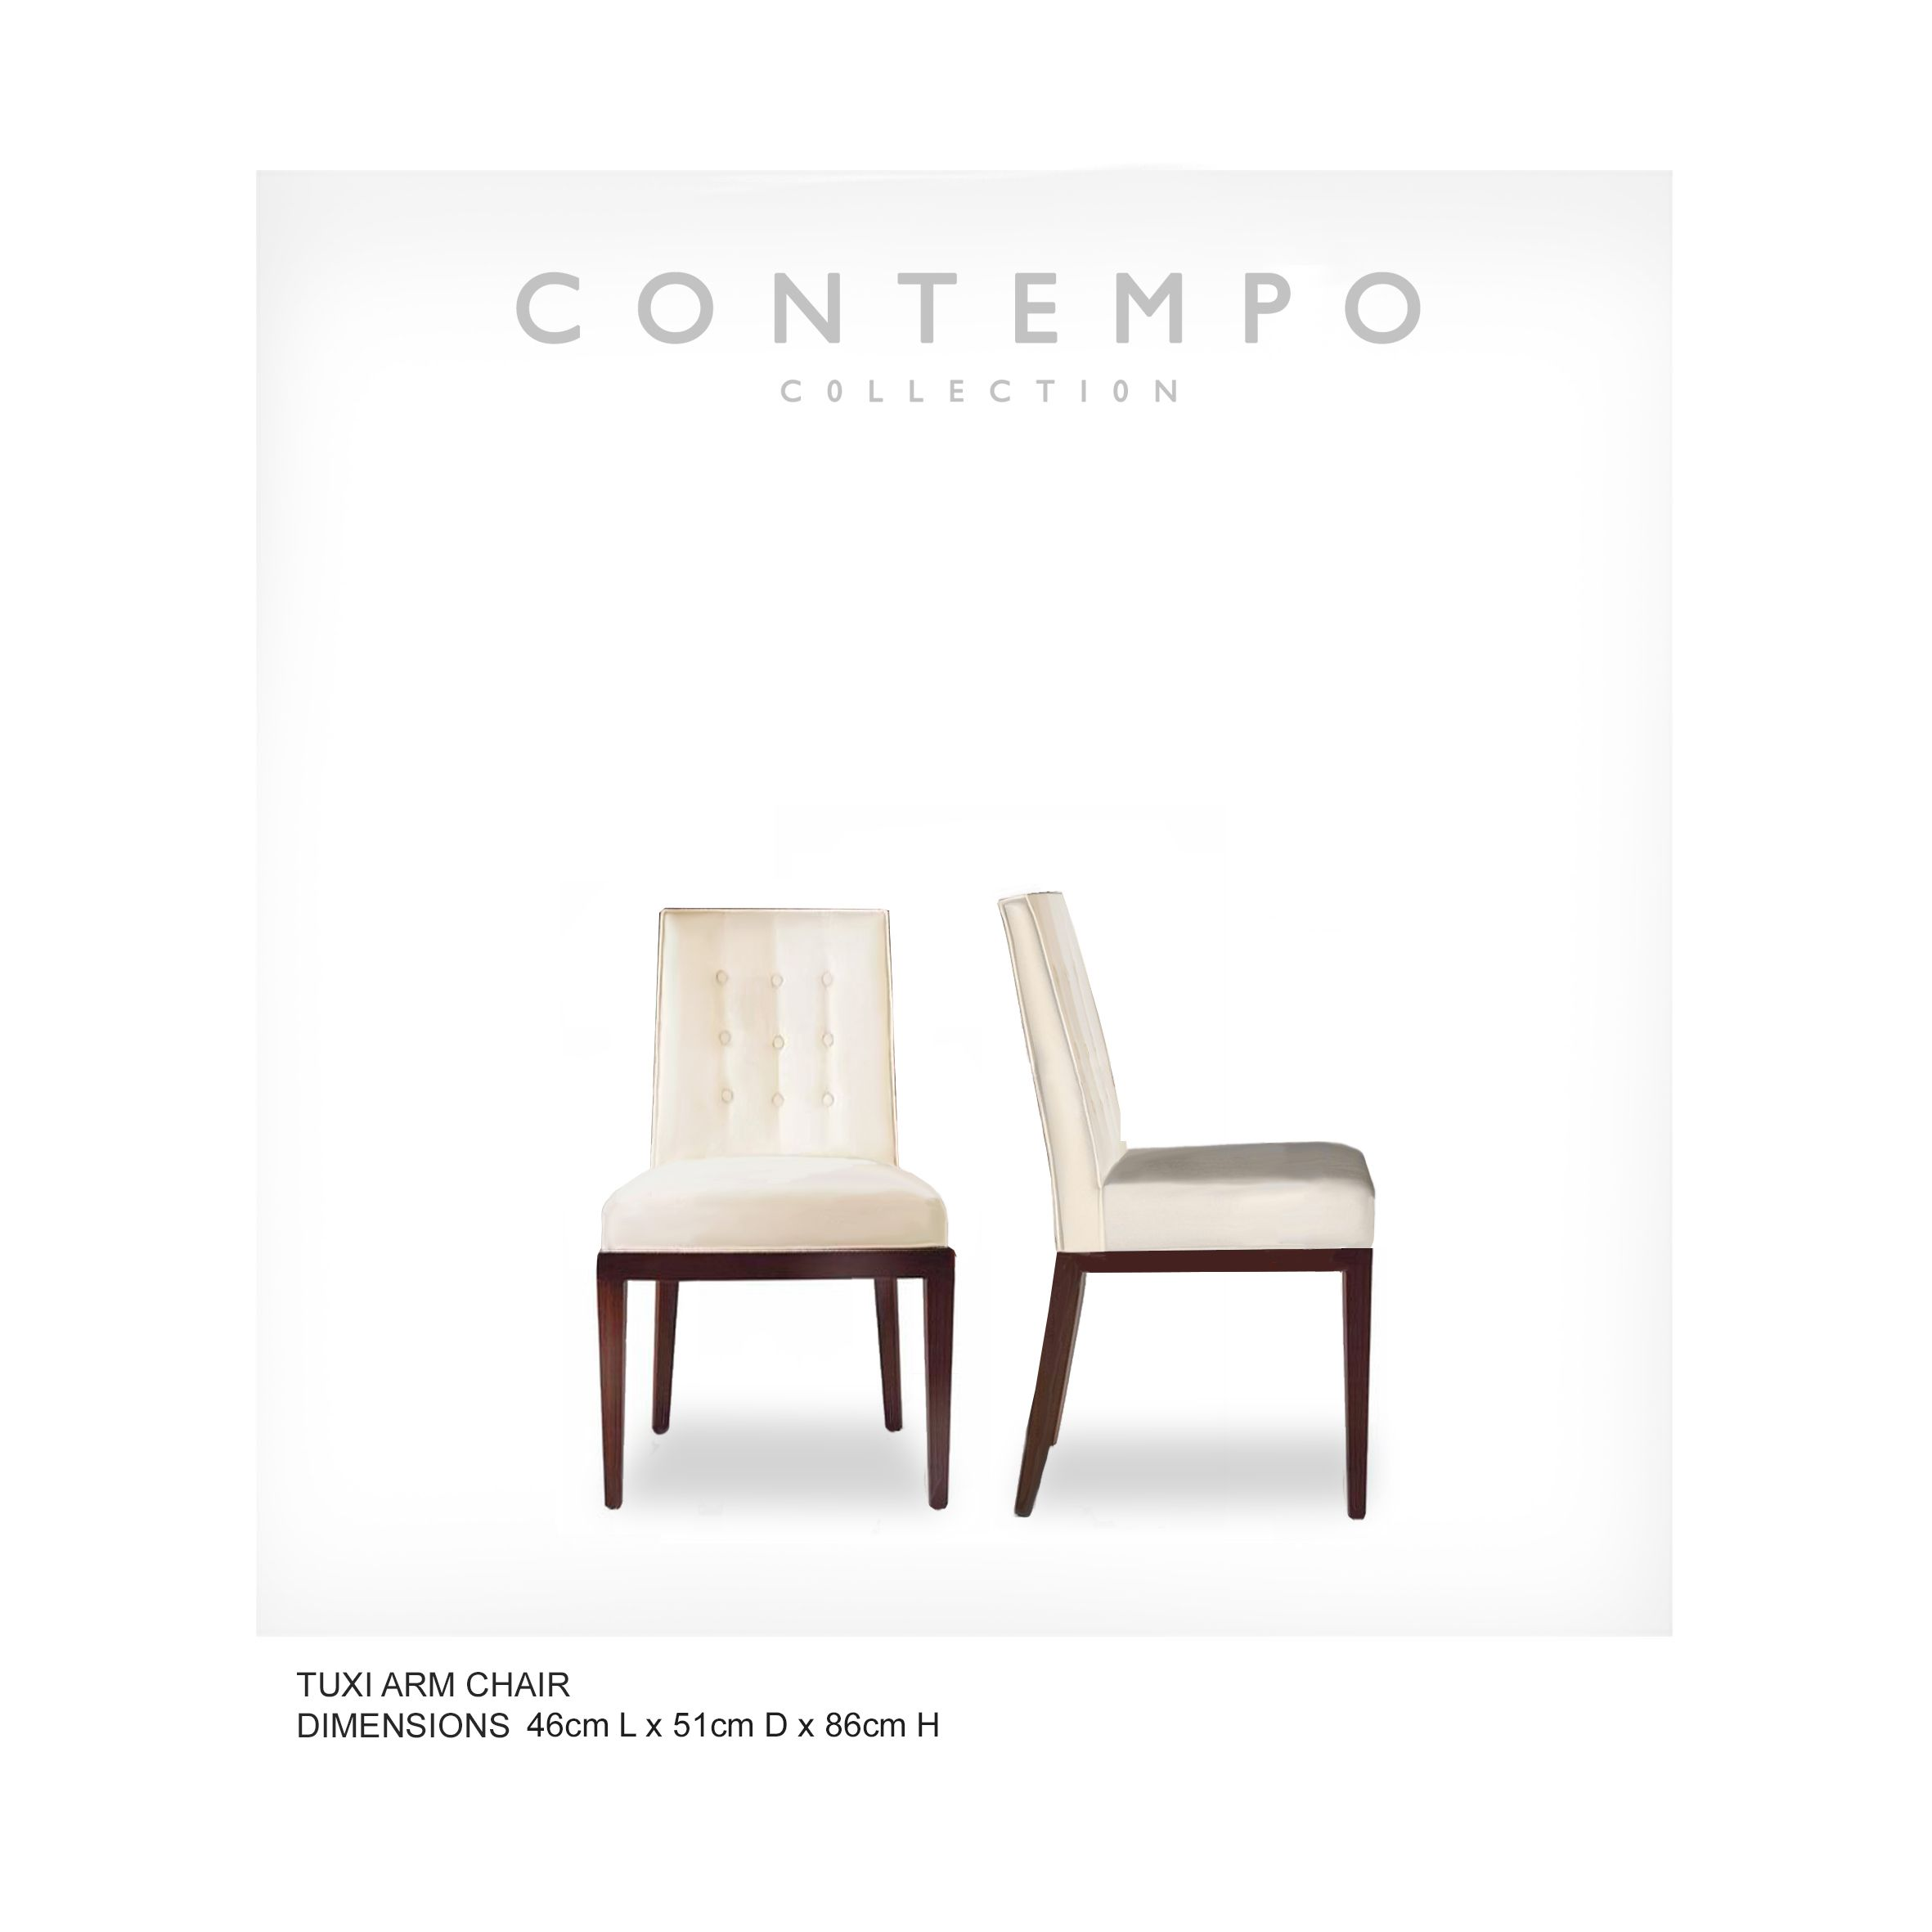 Dr Tuxi Dining Side Chair The Contempo Collection Was Created For